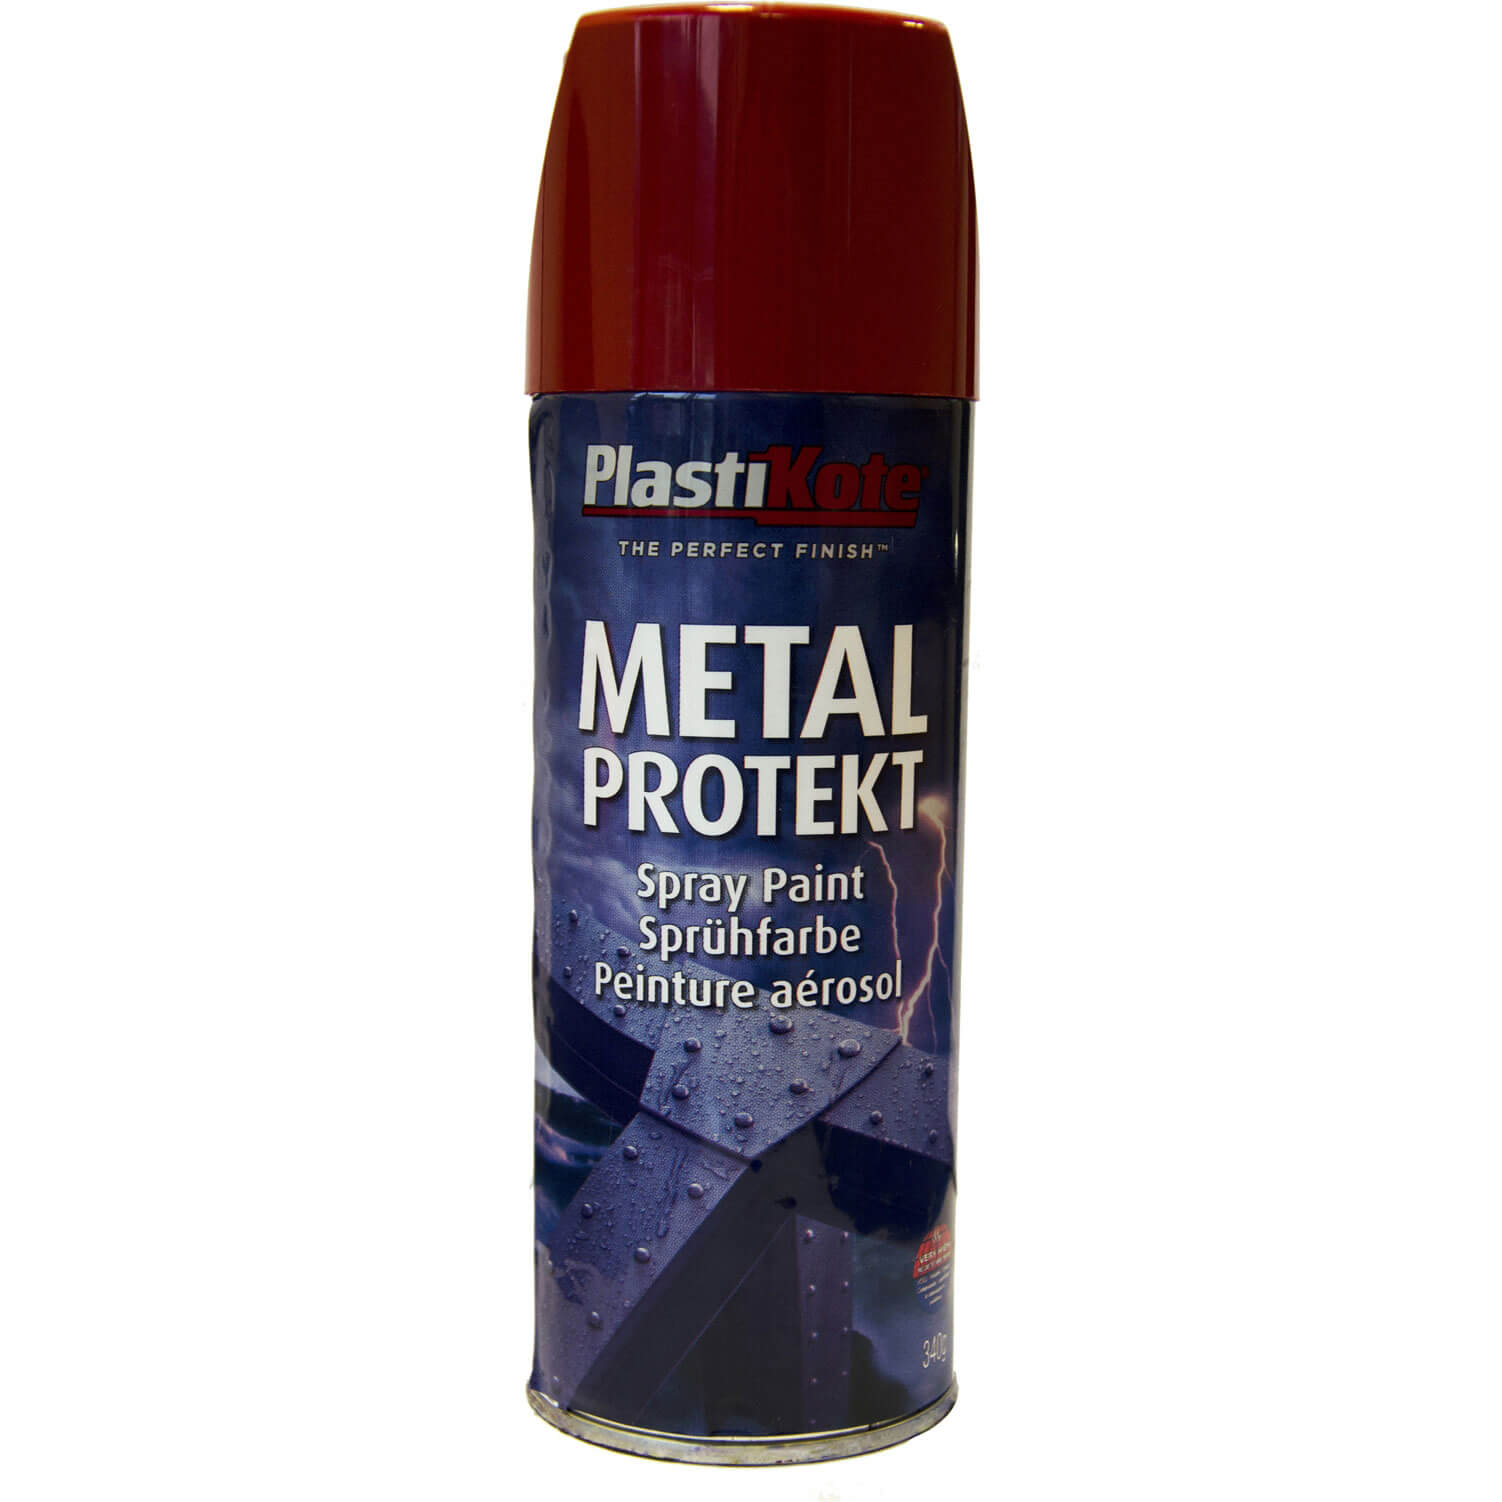 Plastikote Metal Protekt Aerosol Spray Paint Red 400ml